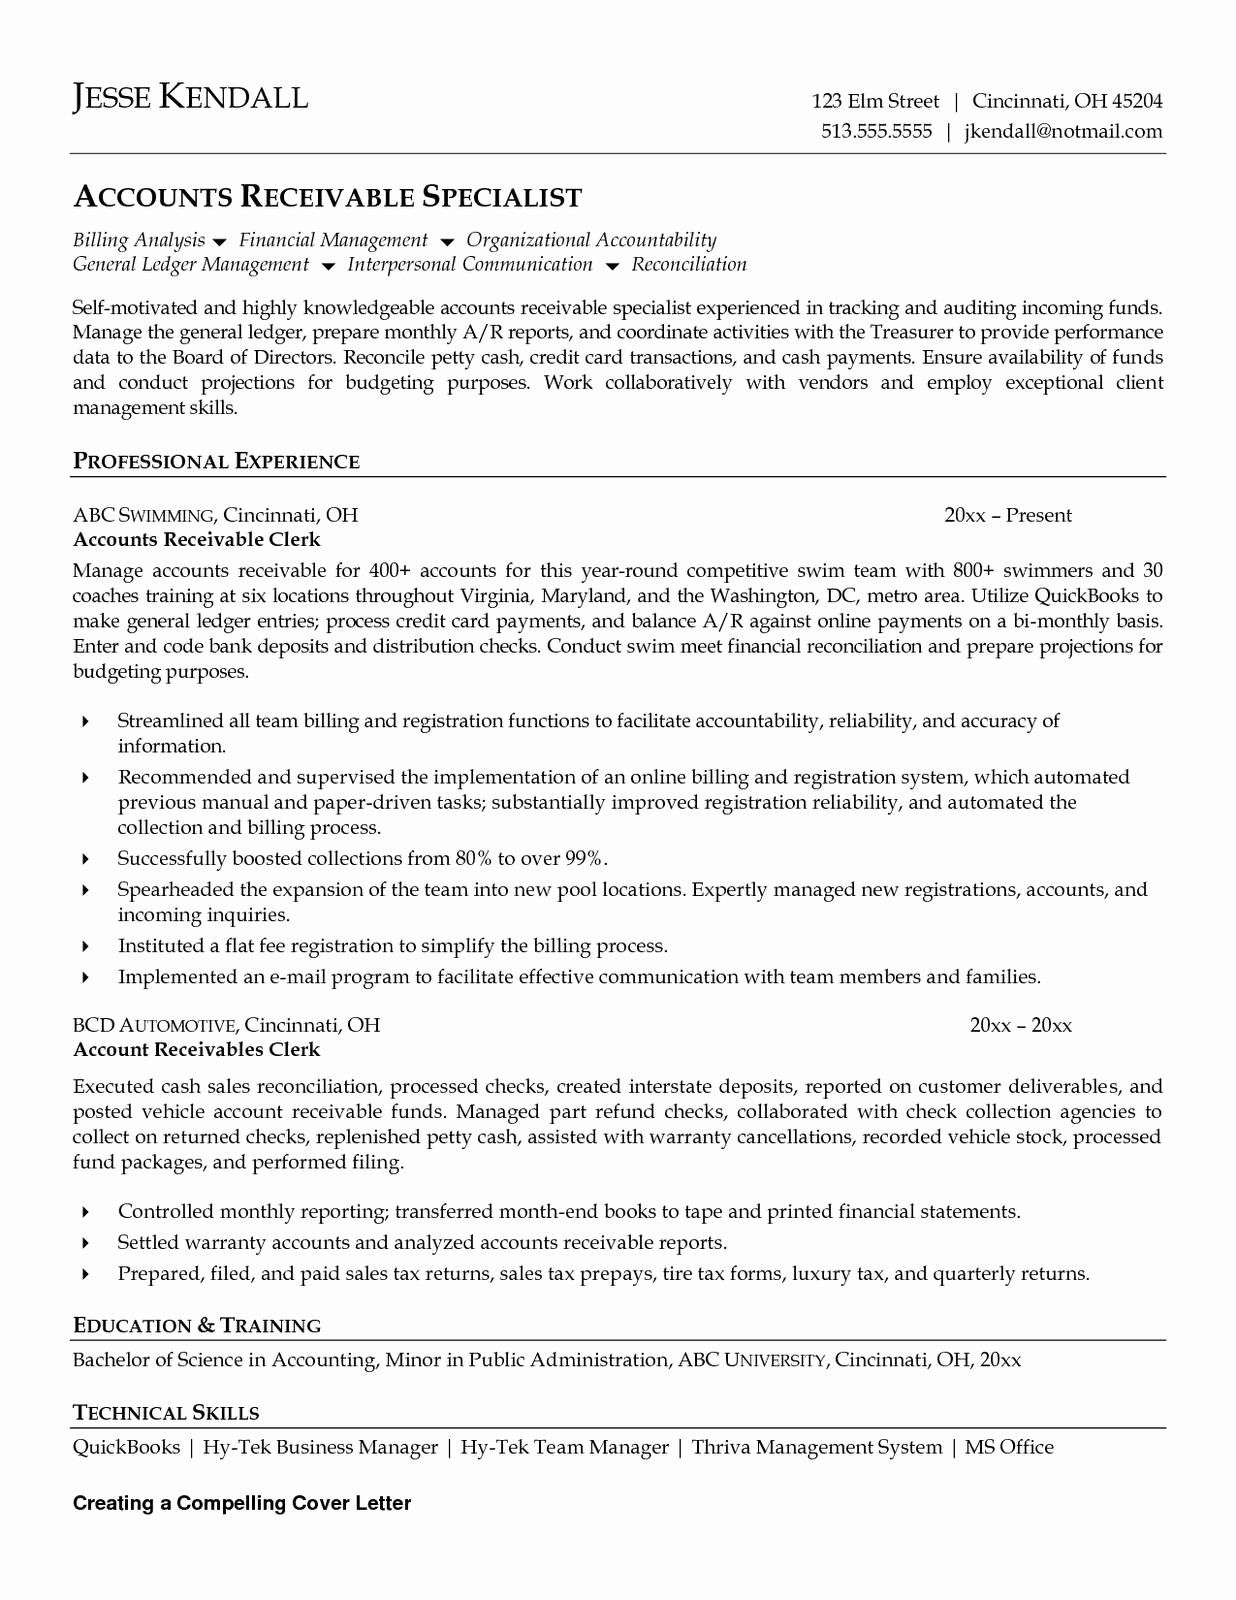 Accounts Payable Specialist Resume Beautiful Resume Examples Accounts Payable Resume Templates Accounts Receivable Resume Examples Job Application Cover Letter